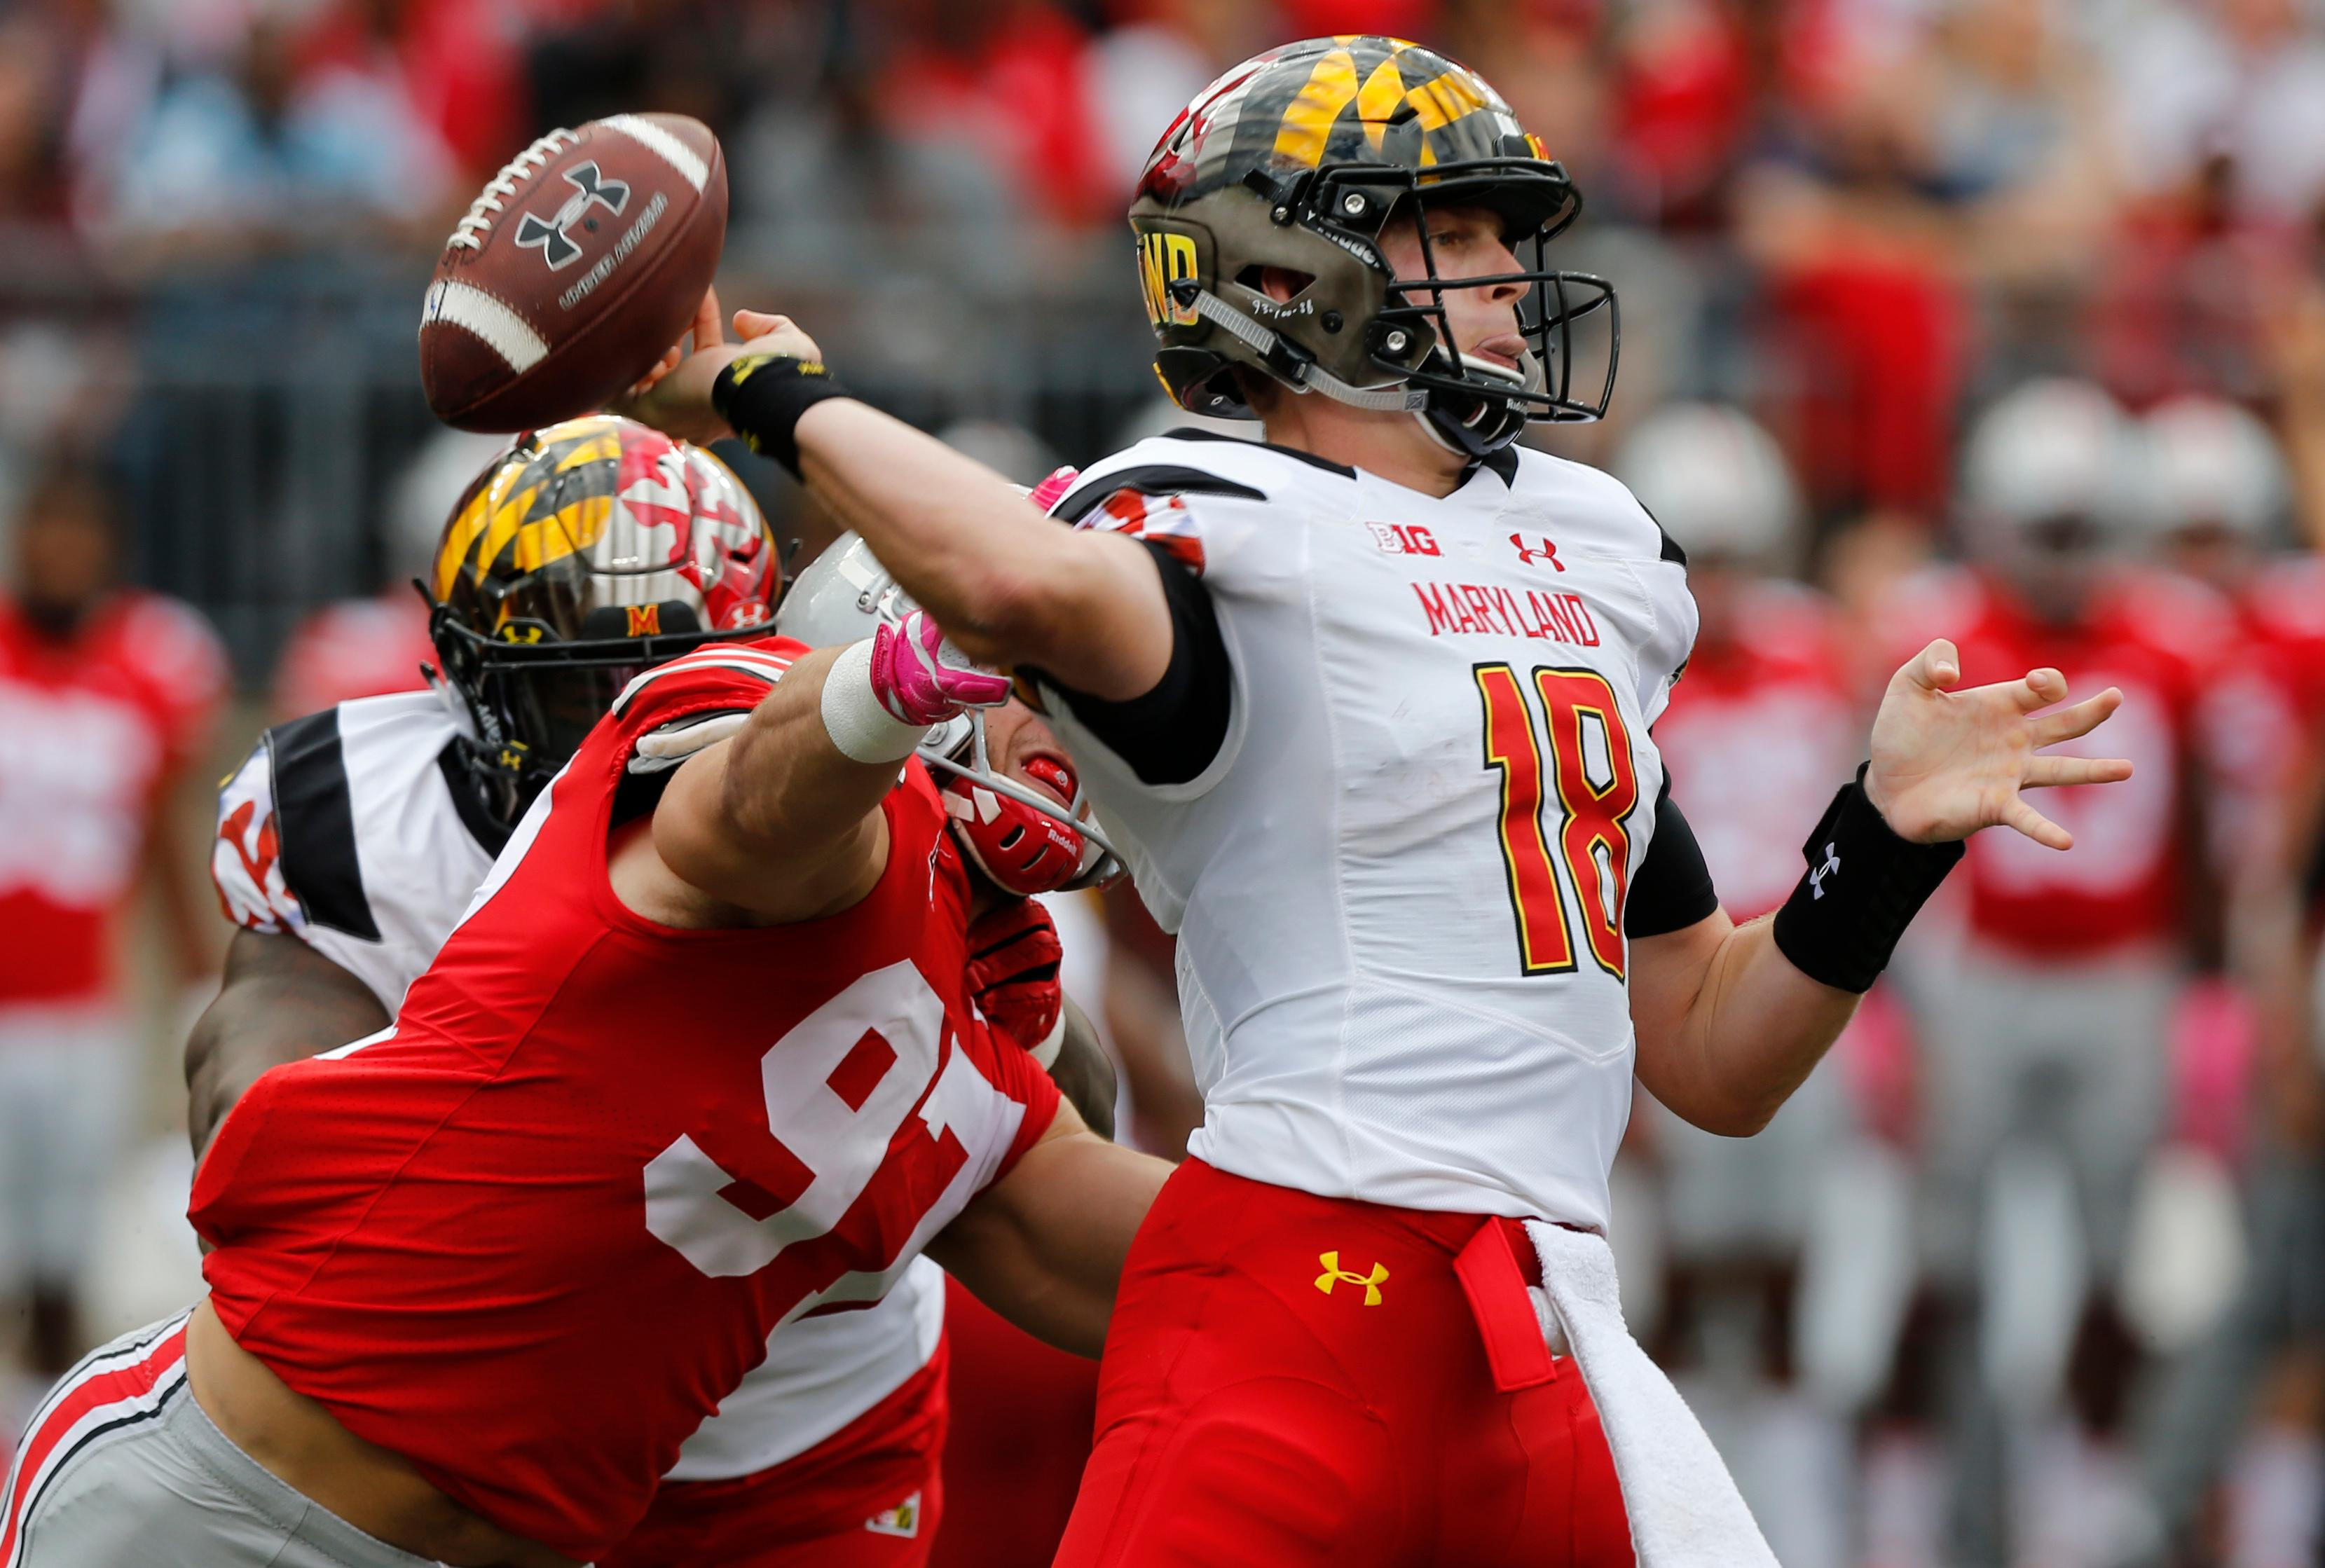 Ohio State defensive end Nick Bosa, left, causes Maryland quarterback Max Bortenschlager to fumble the ball during the first half of an NCAA college football game Saturday, Oct. 7, 2017, in Columbus, Ohio. (AP Photo/Jay LaPrete)